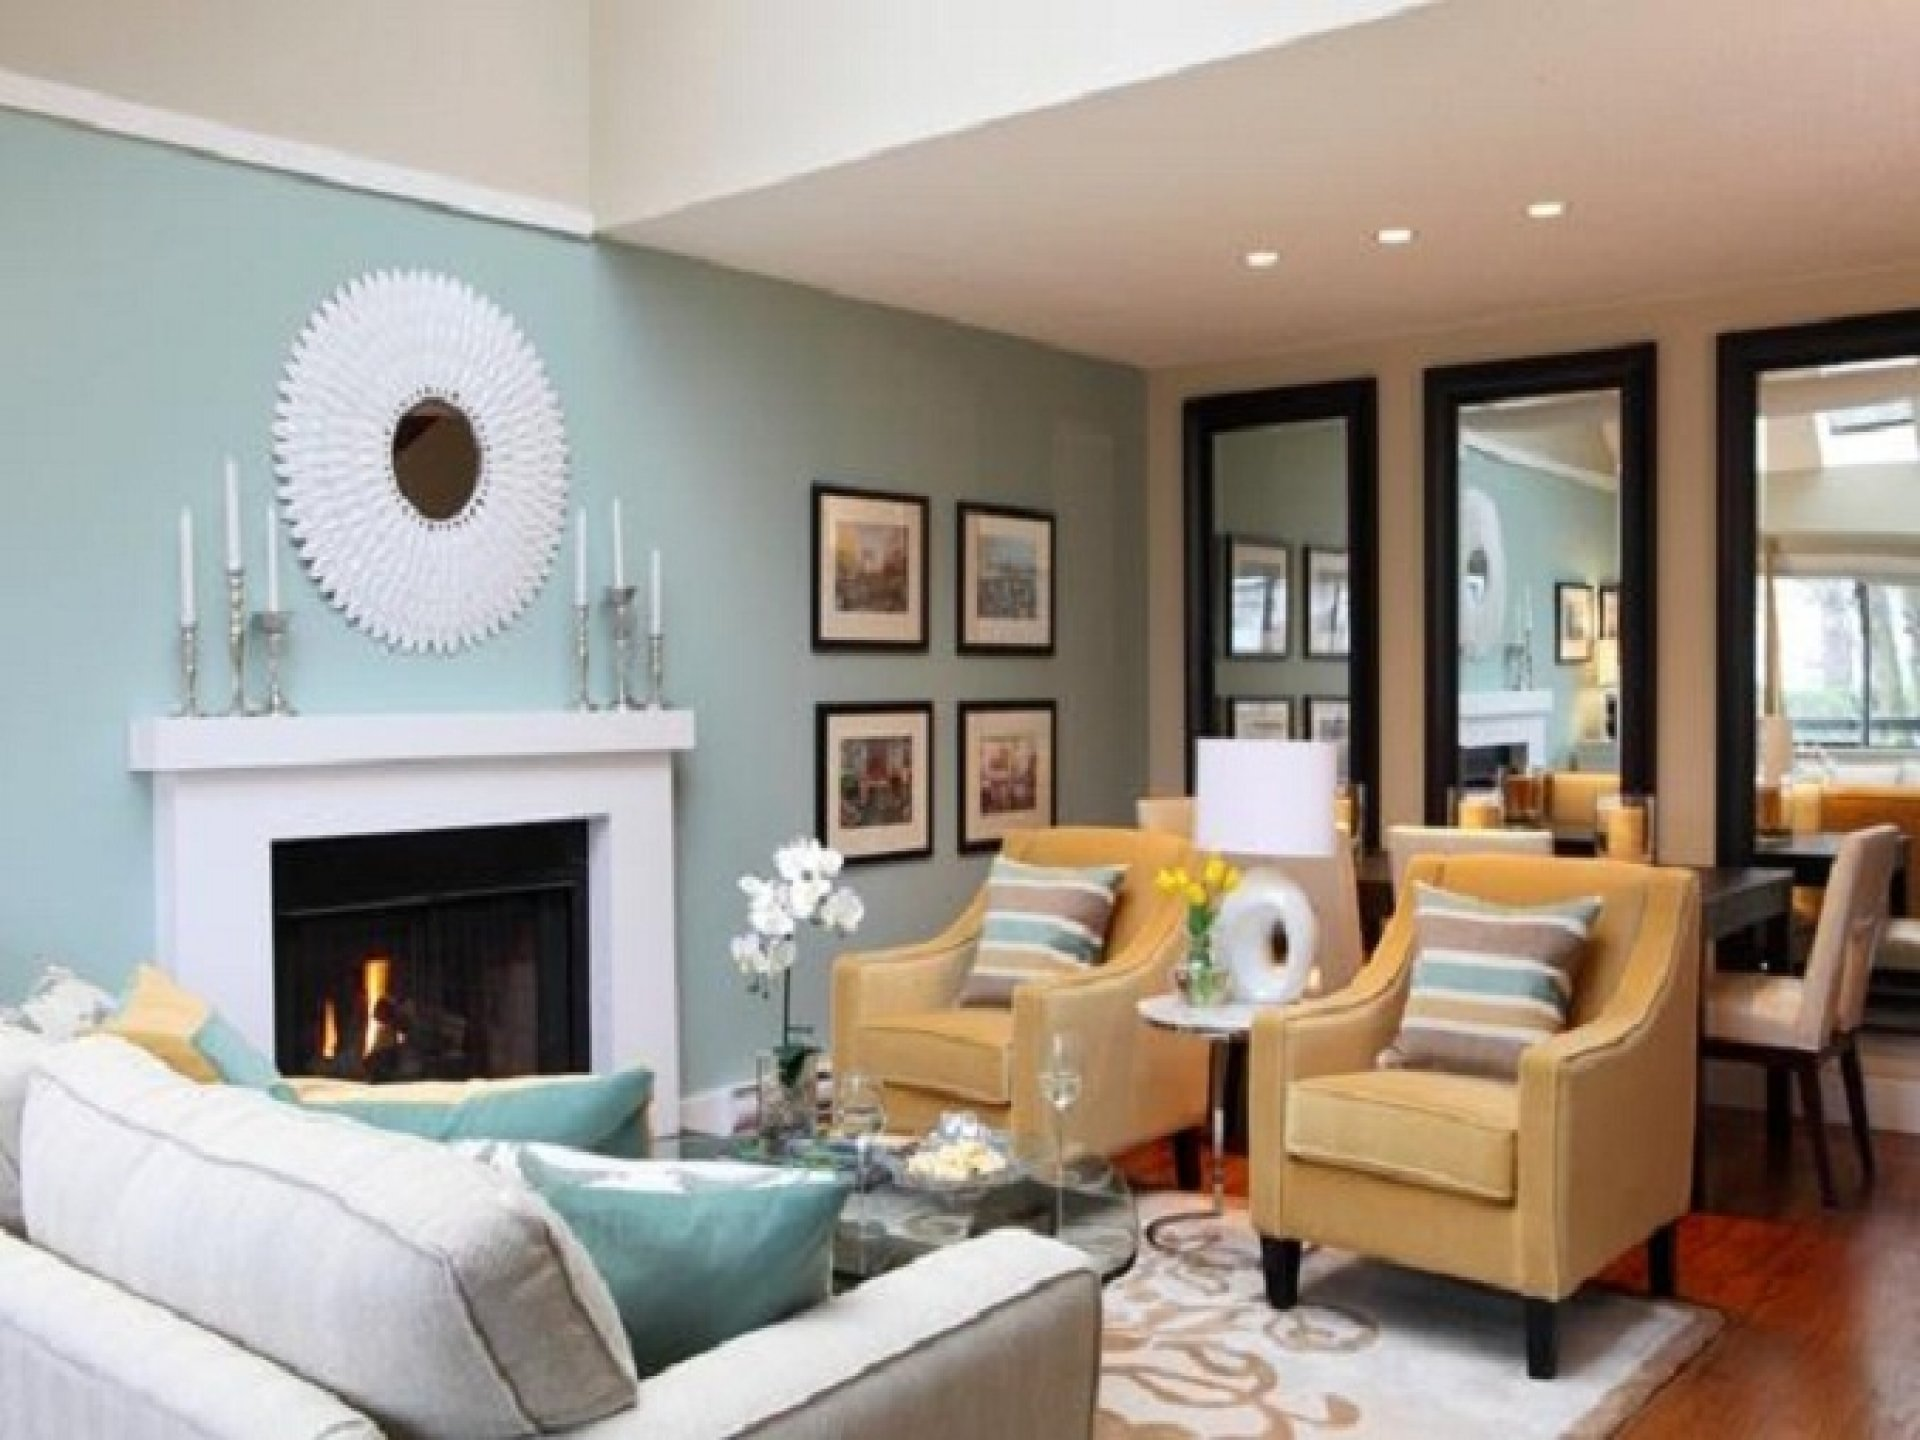 10 Elegant Living Room Color Ideas For Small Spaces living room paint colors living room design ideas for small spaces 2020